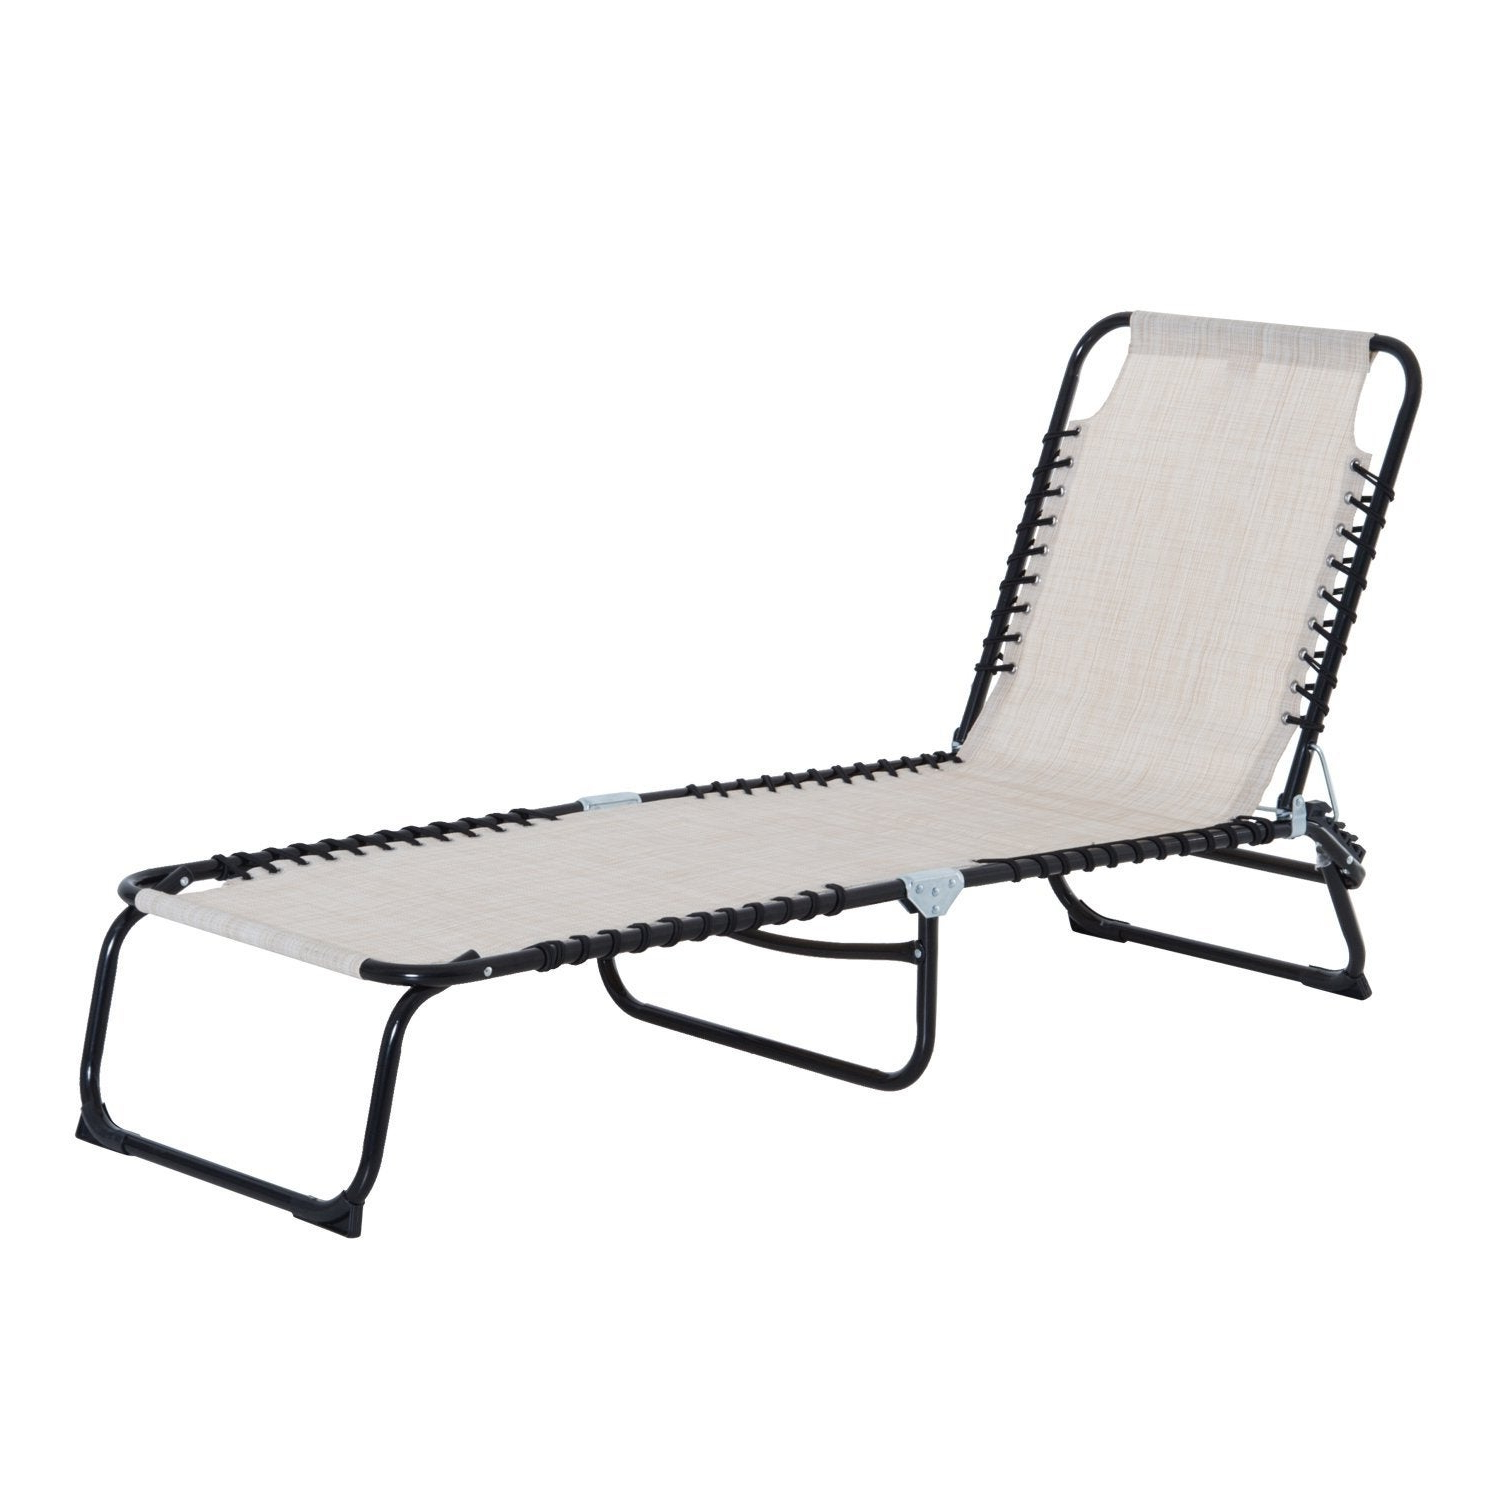 Best And Newest 3 Position Portable Folding Reclining Beach Chaise Lounges Pertaining To Outsunny 3 Position Portable Reclining Beach Chaise Lounge Folding Chair Outdoor Patio – Cream White (Gallery 2 of 25)